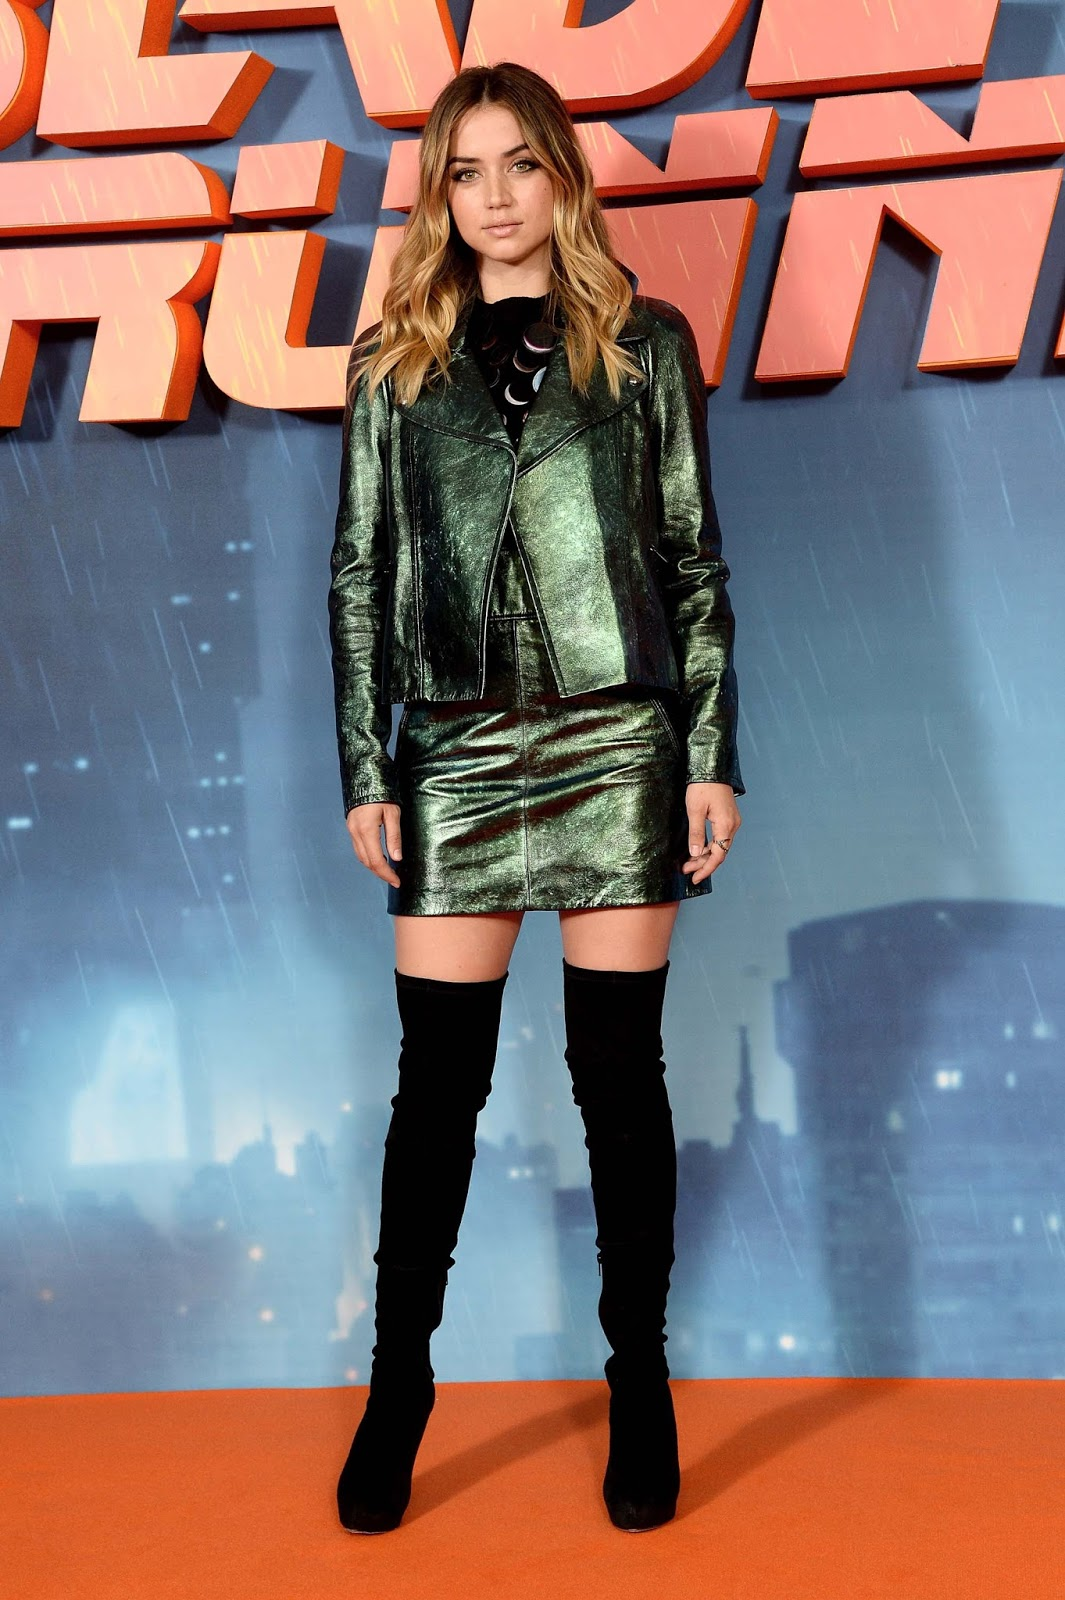 Lovely Ladies in Leather: Ana de Armas in a leather suit